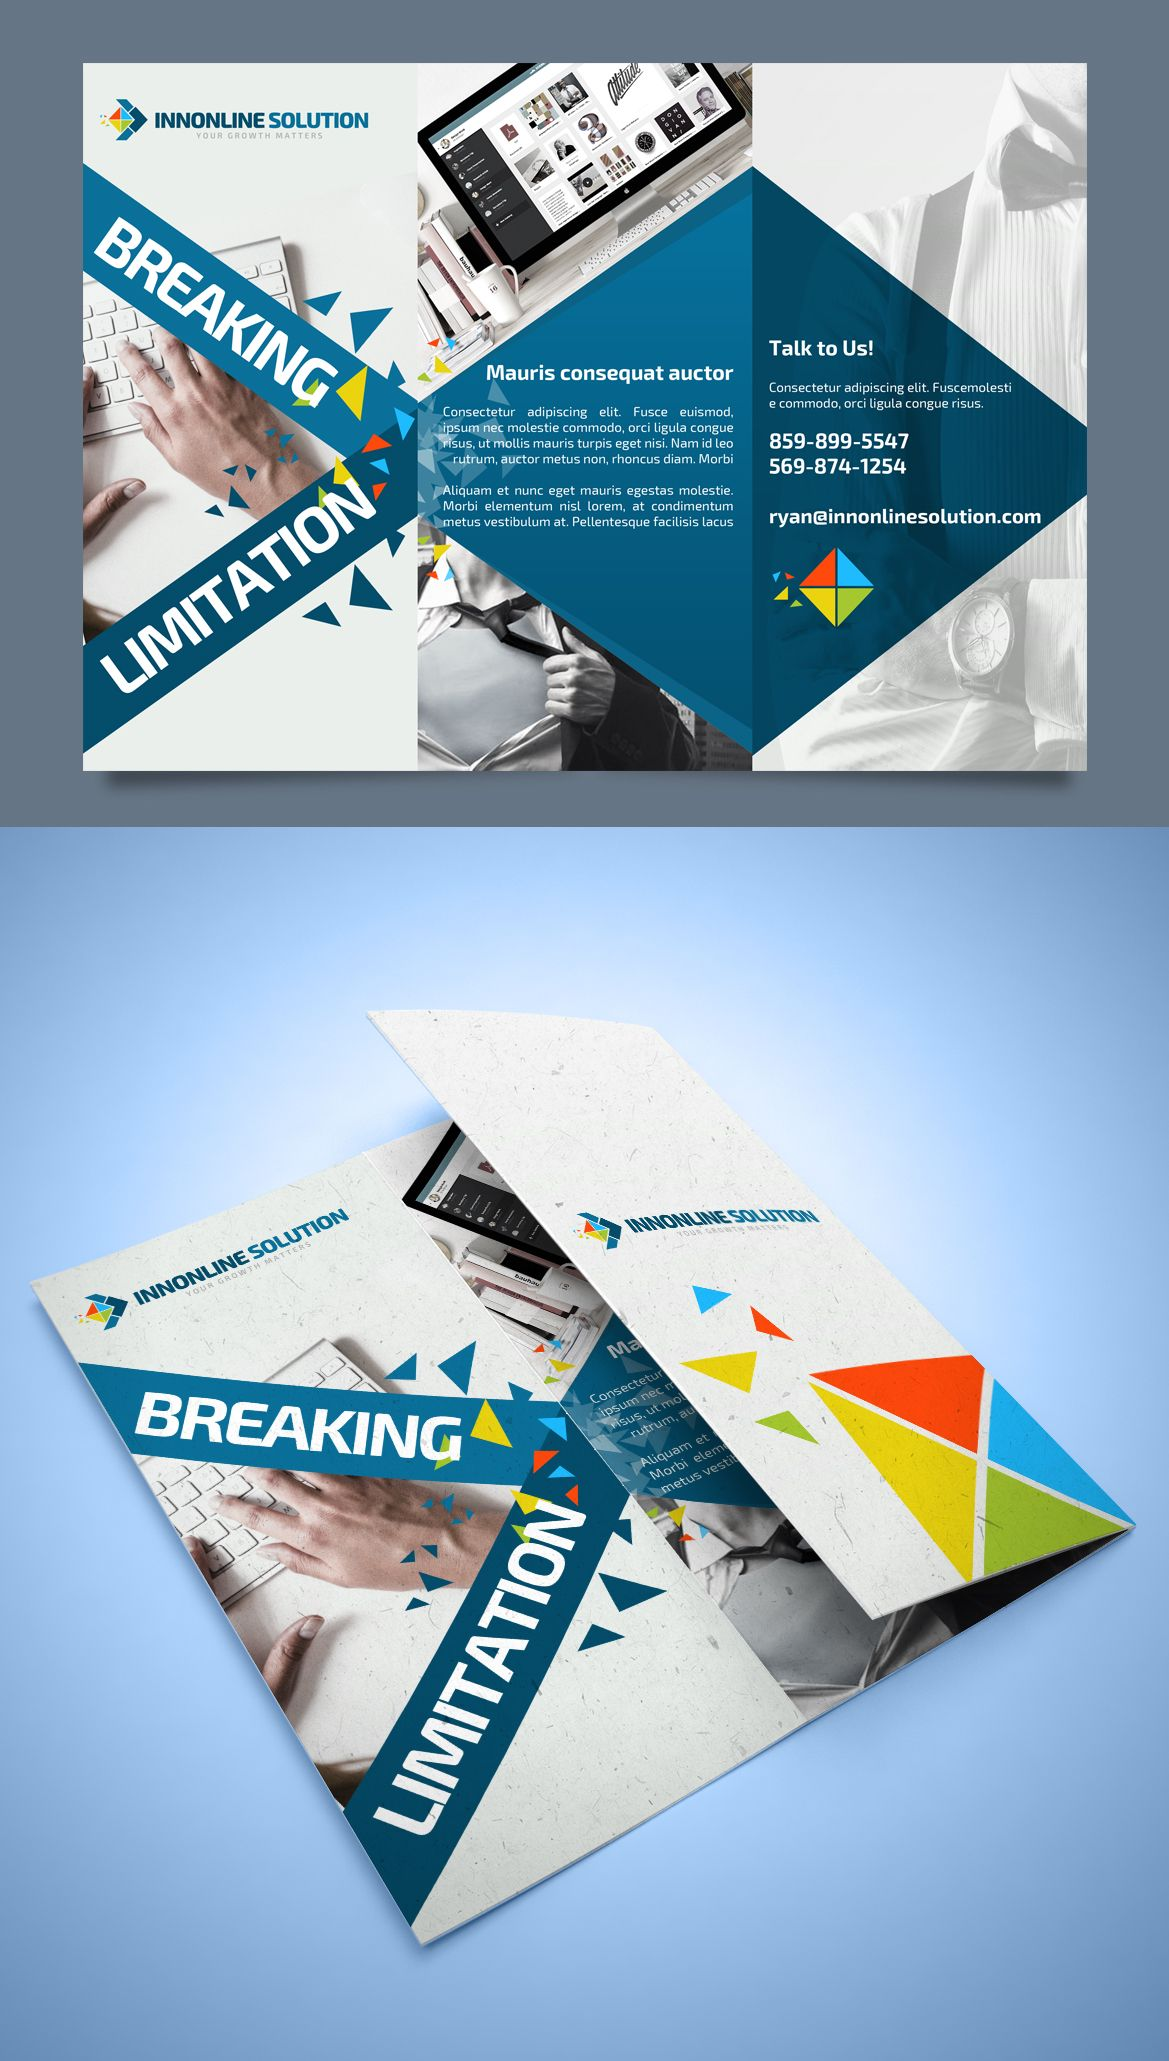 trifold design flyer for innonline solution flyer business